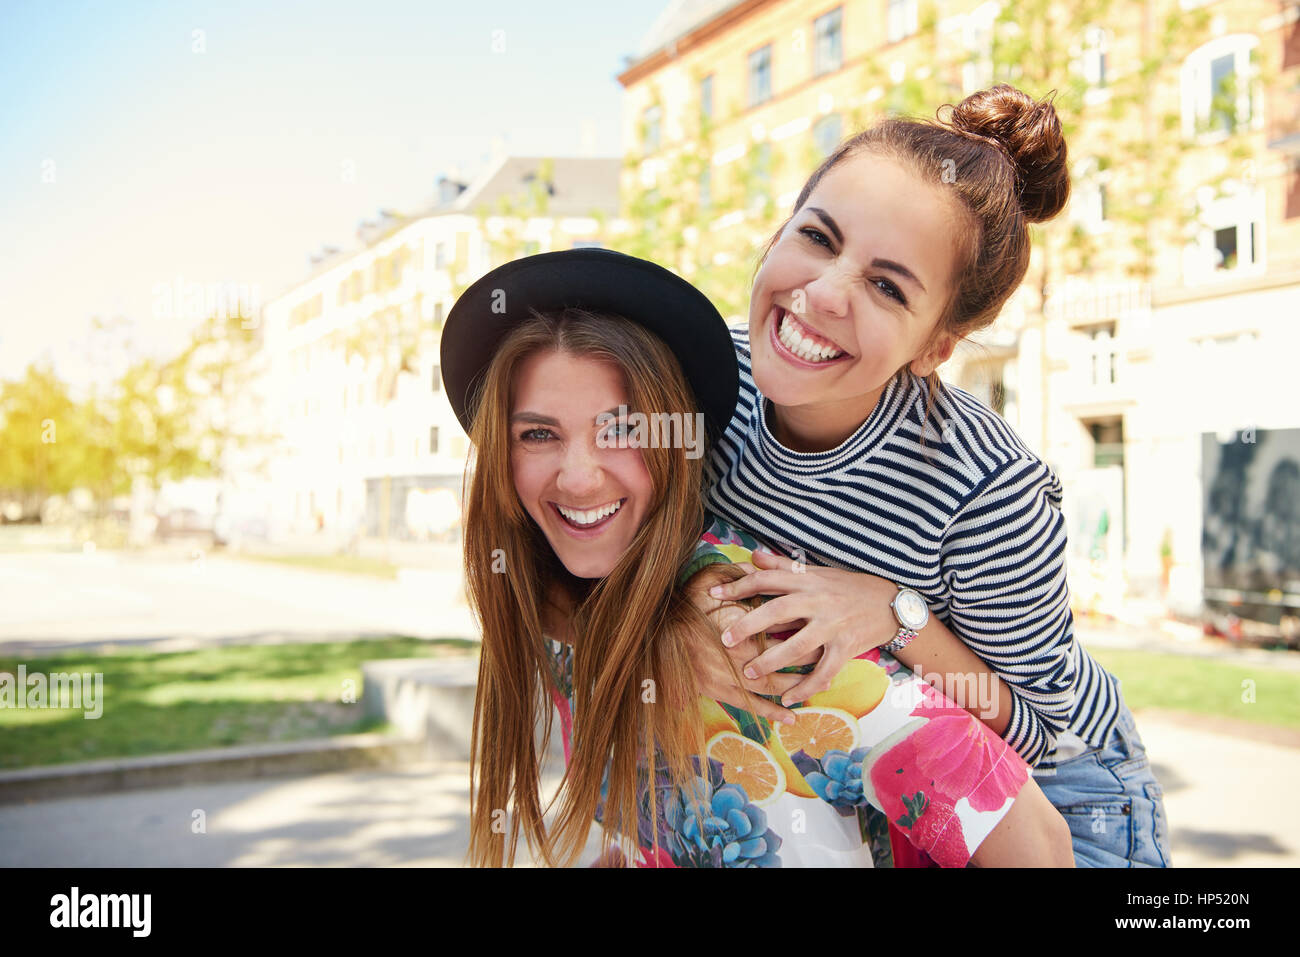 Two happy young women friends piggy backing in the shade of a tree in a quiet urban park grinning merrily at the - Stock Image